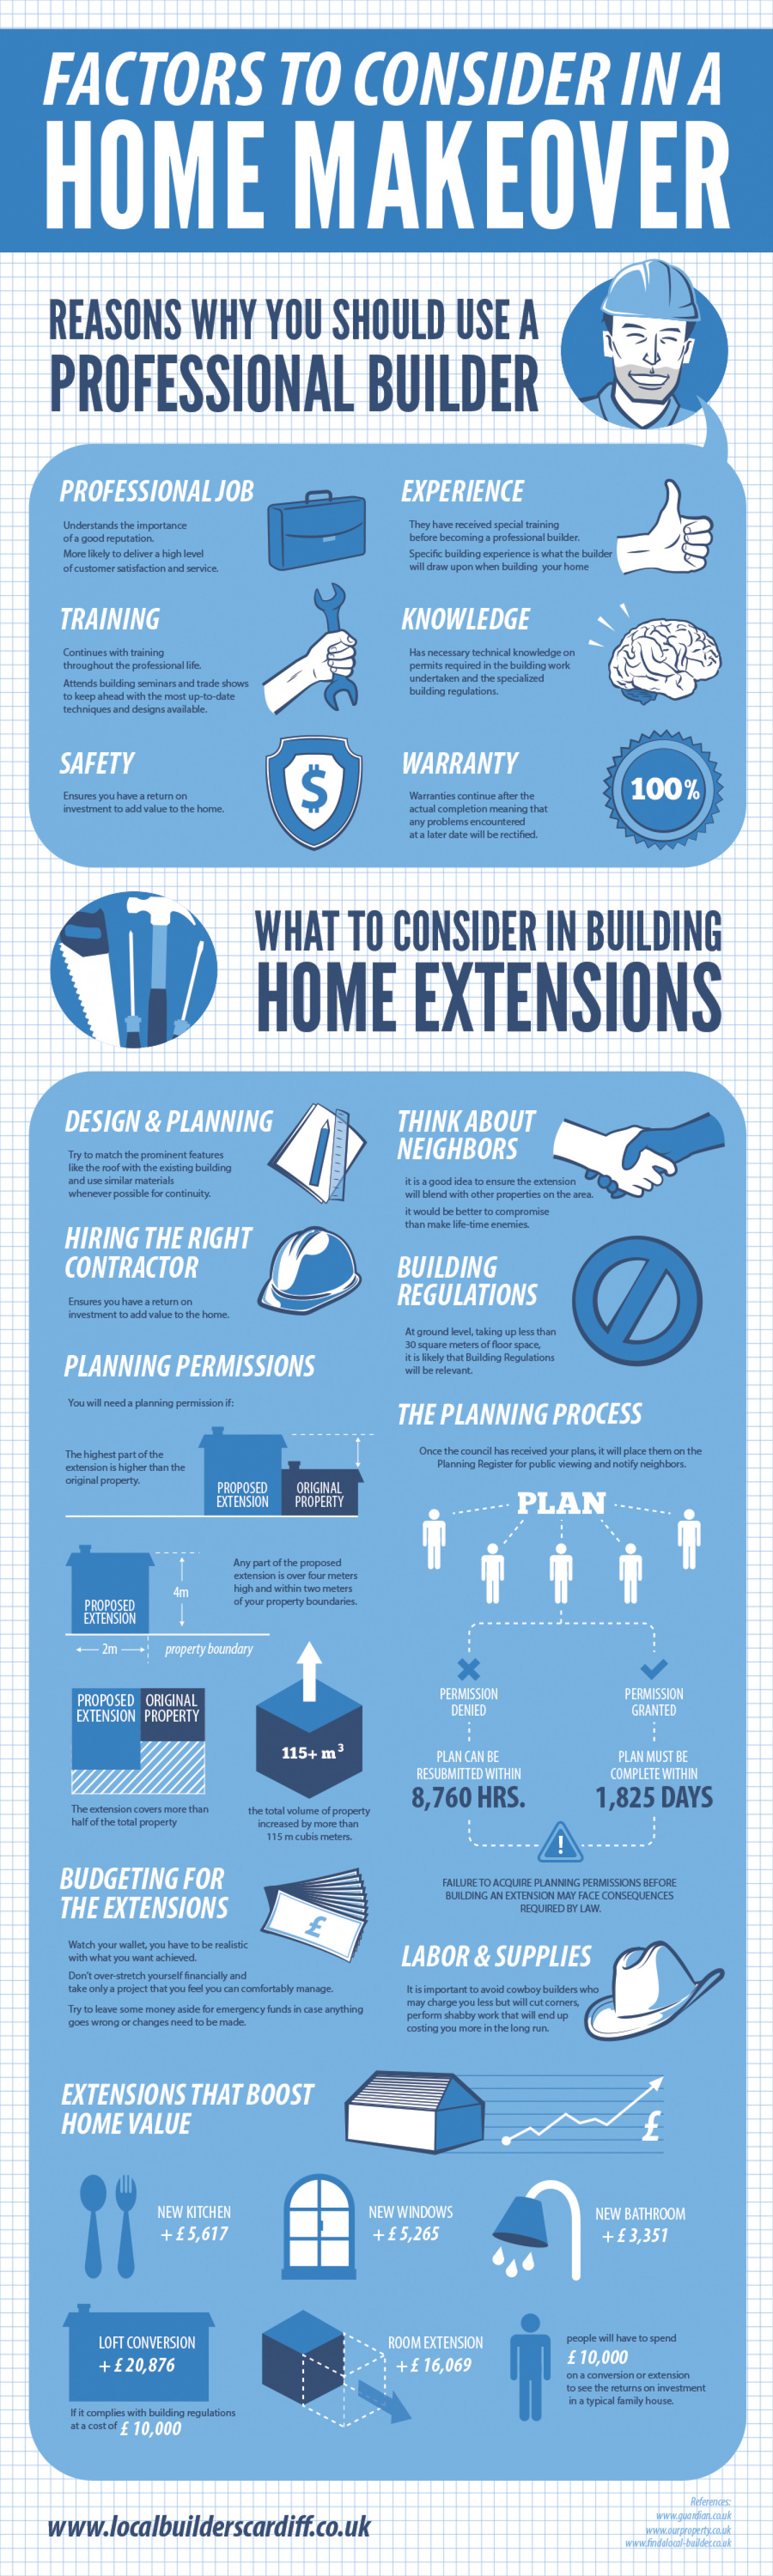 Factors to Consider in A Home Makeover Infographic